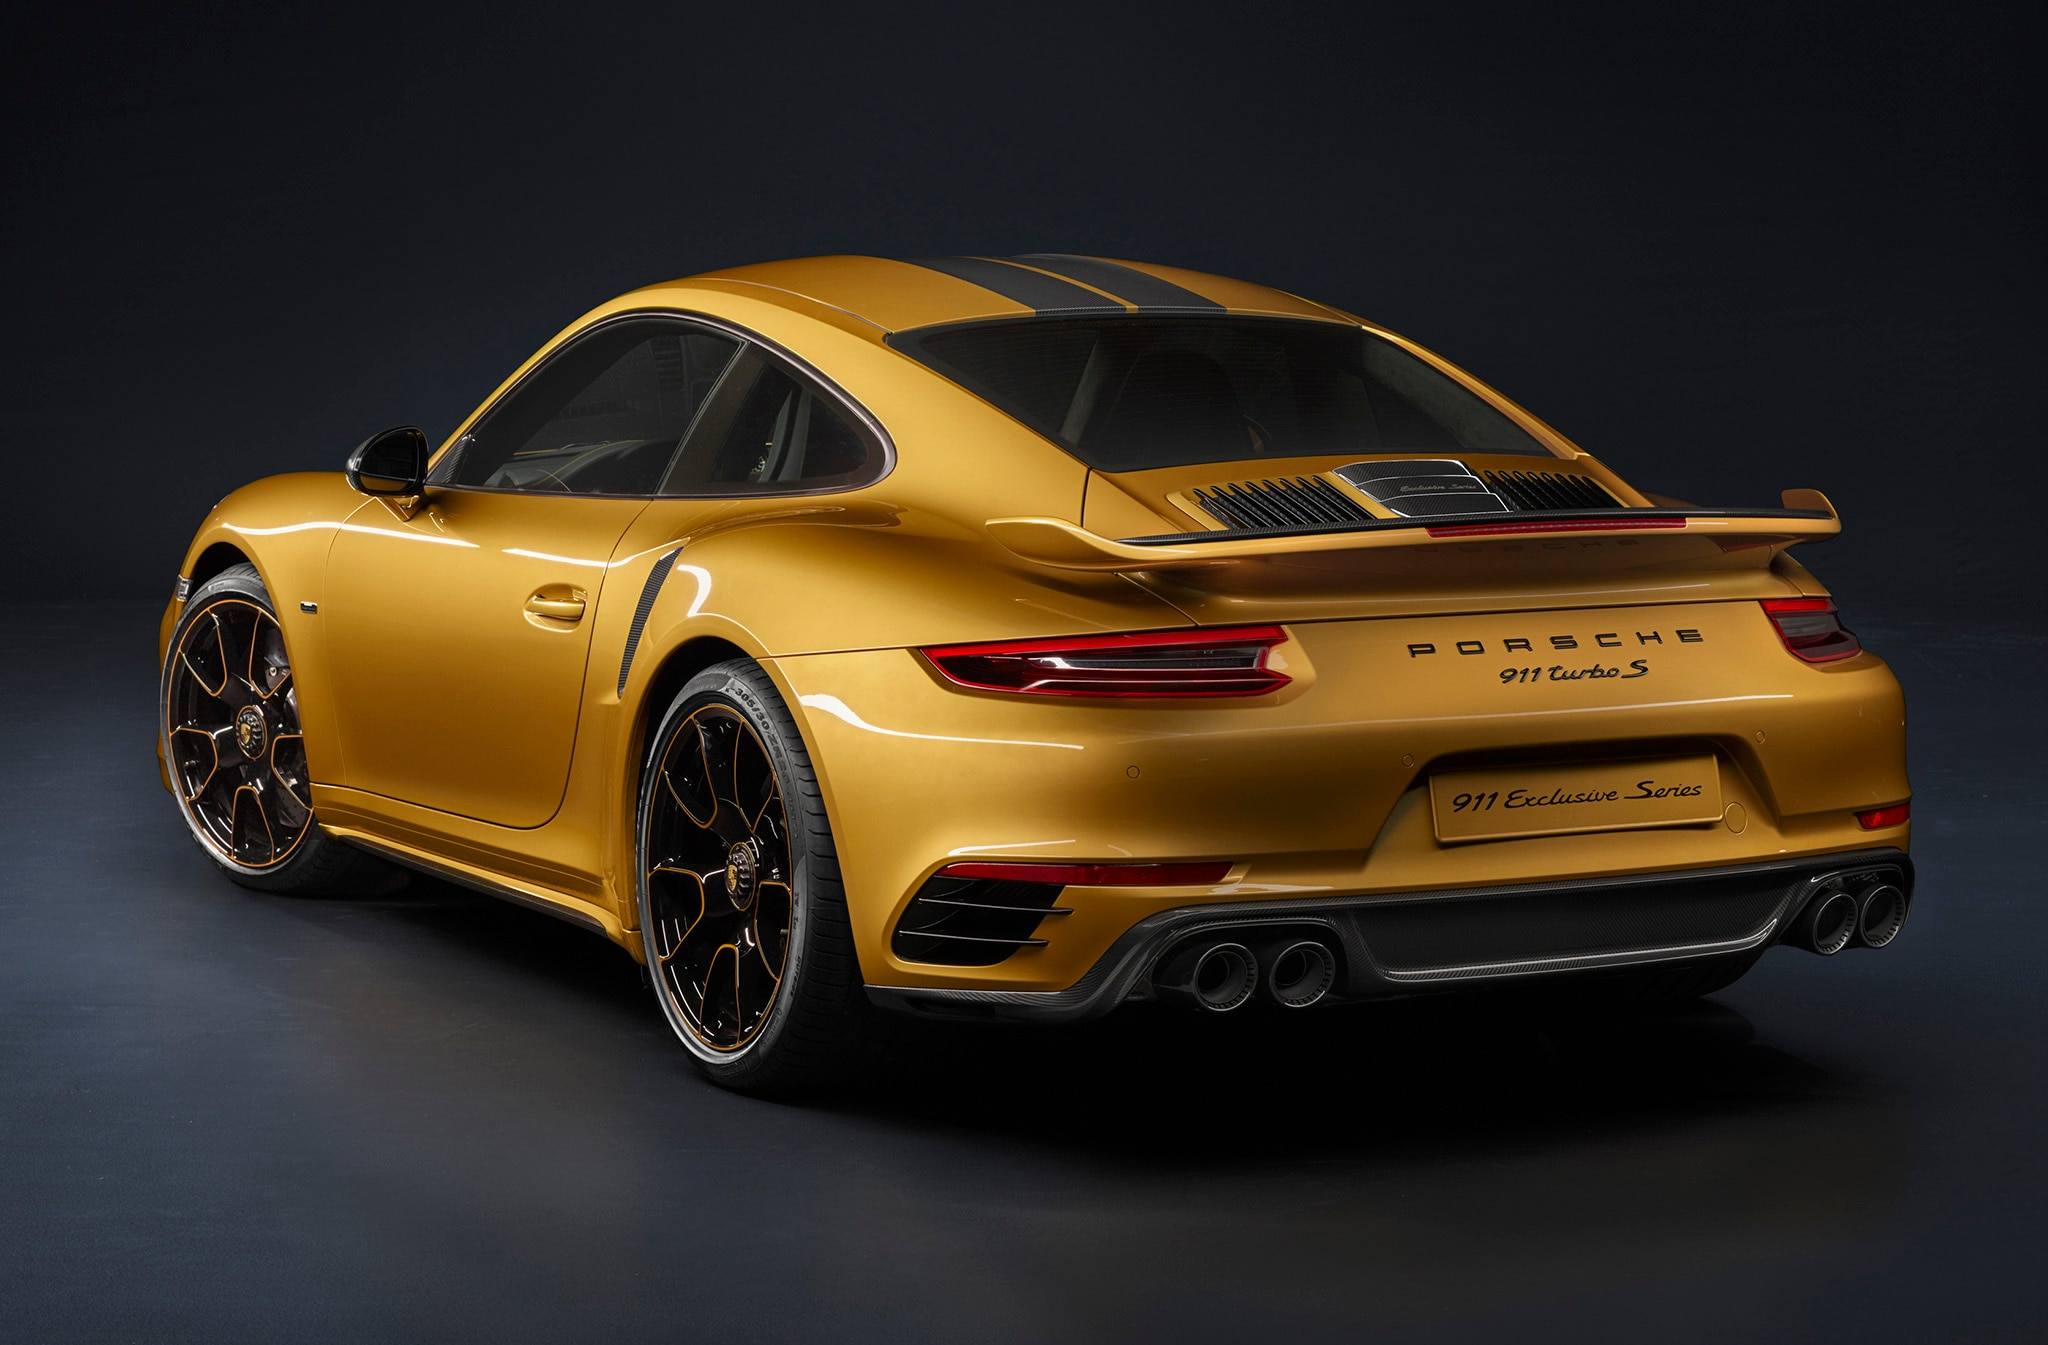 Porsche 911 Turbo S Exclusive Series Unveiled